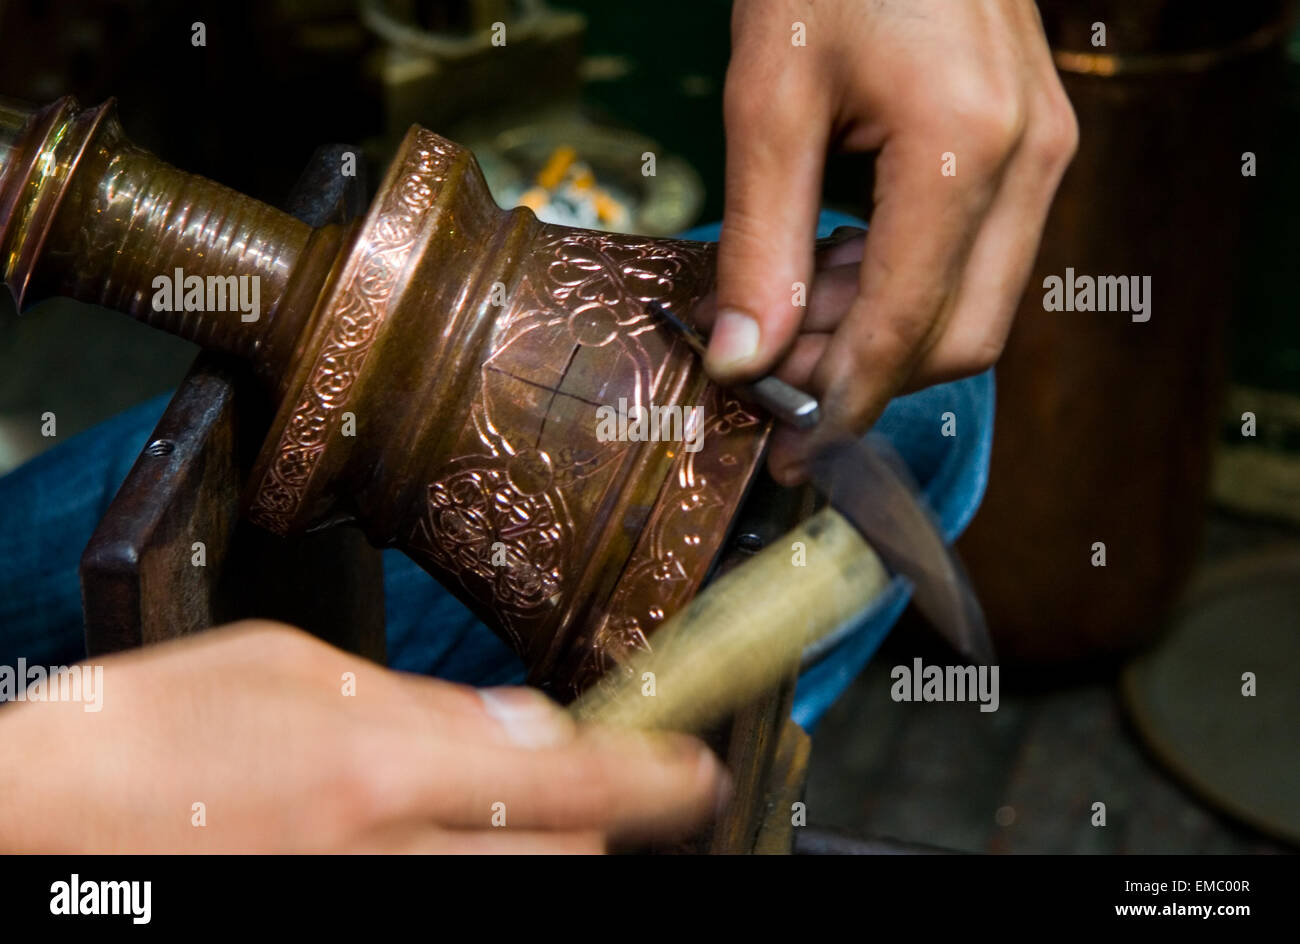 Hands of turkish chaser in process of oriental design calking, Istanbul - Stock Image